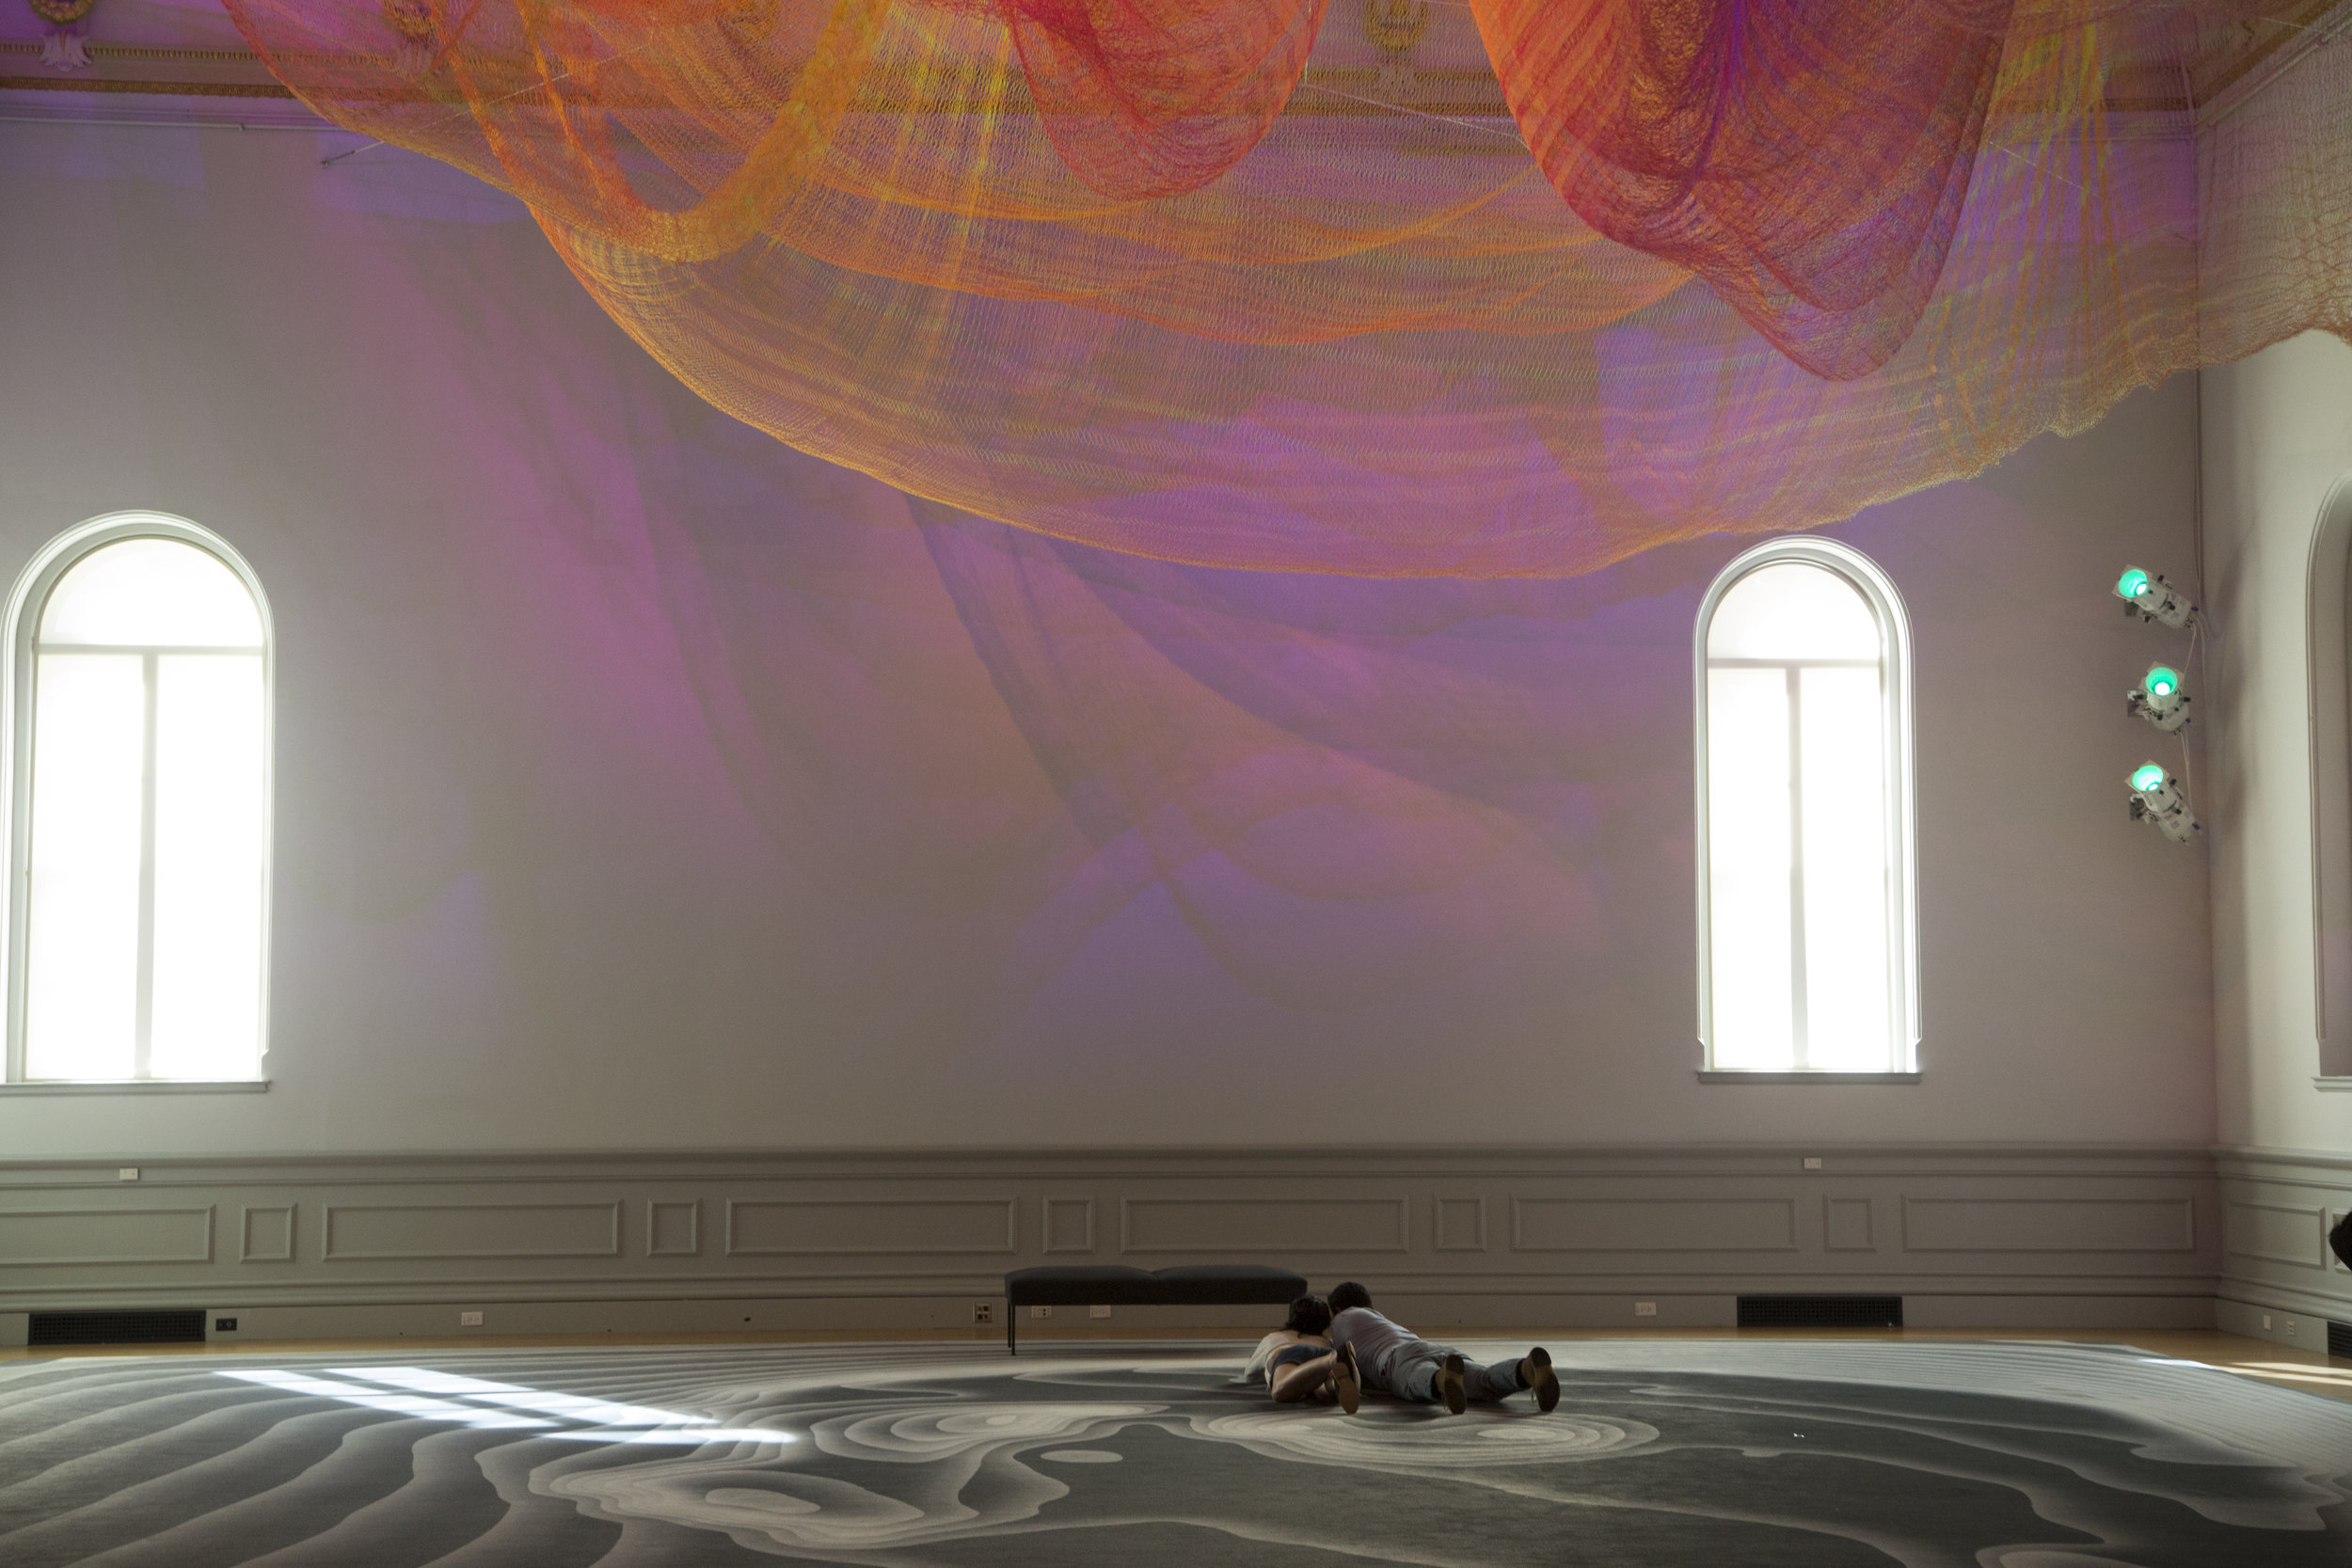 Light exhibit at the Renwick Gallery in Washington, DC